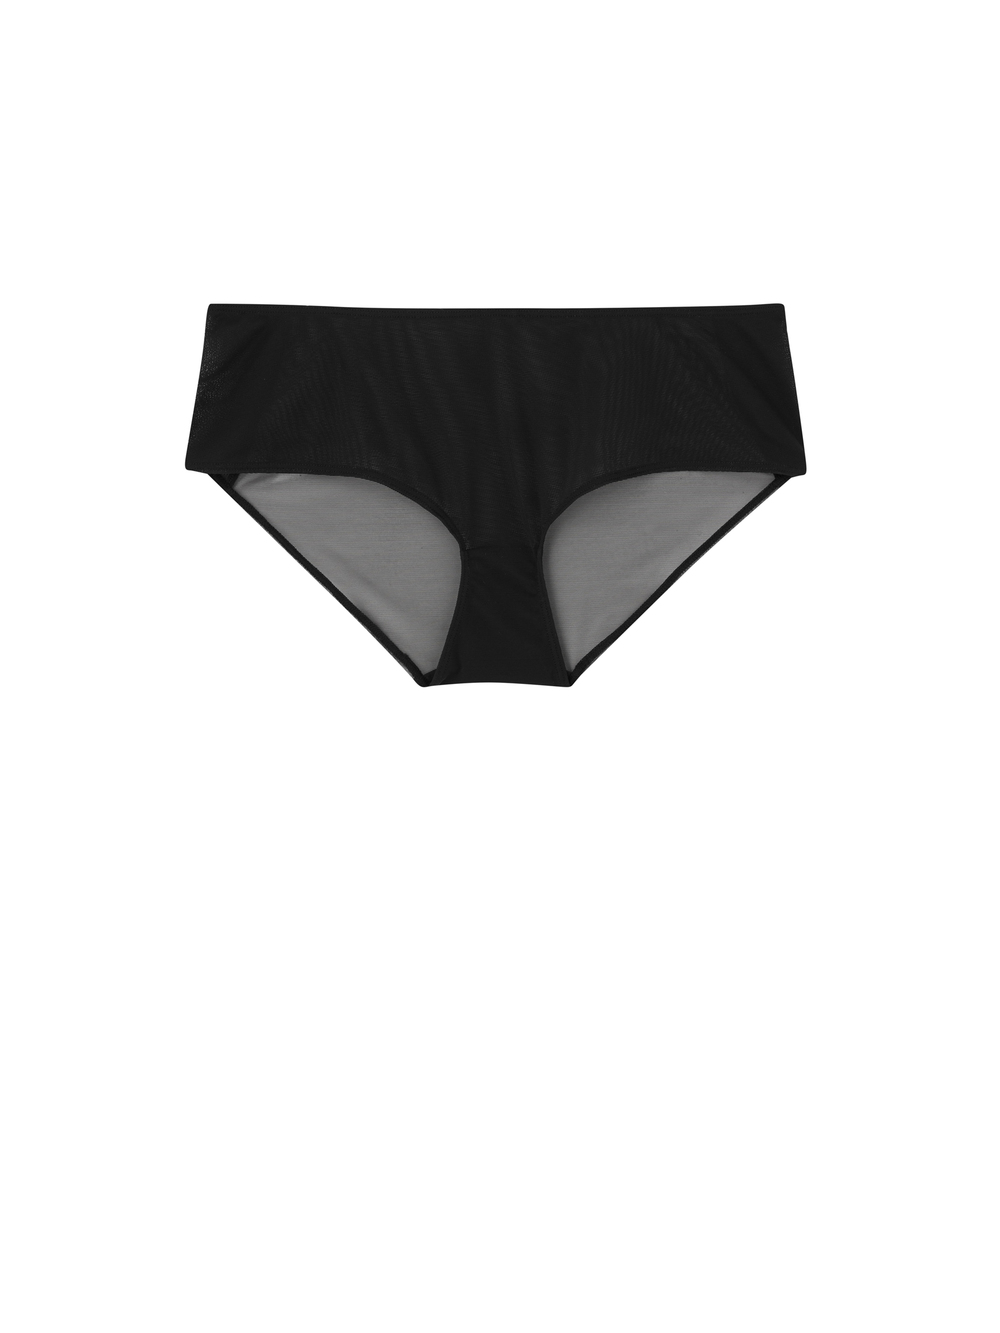 TWIGS KNICKERS_$25.jpg